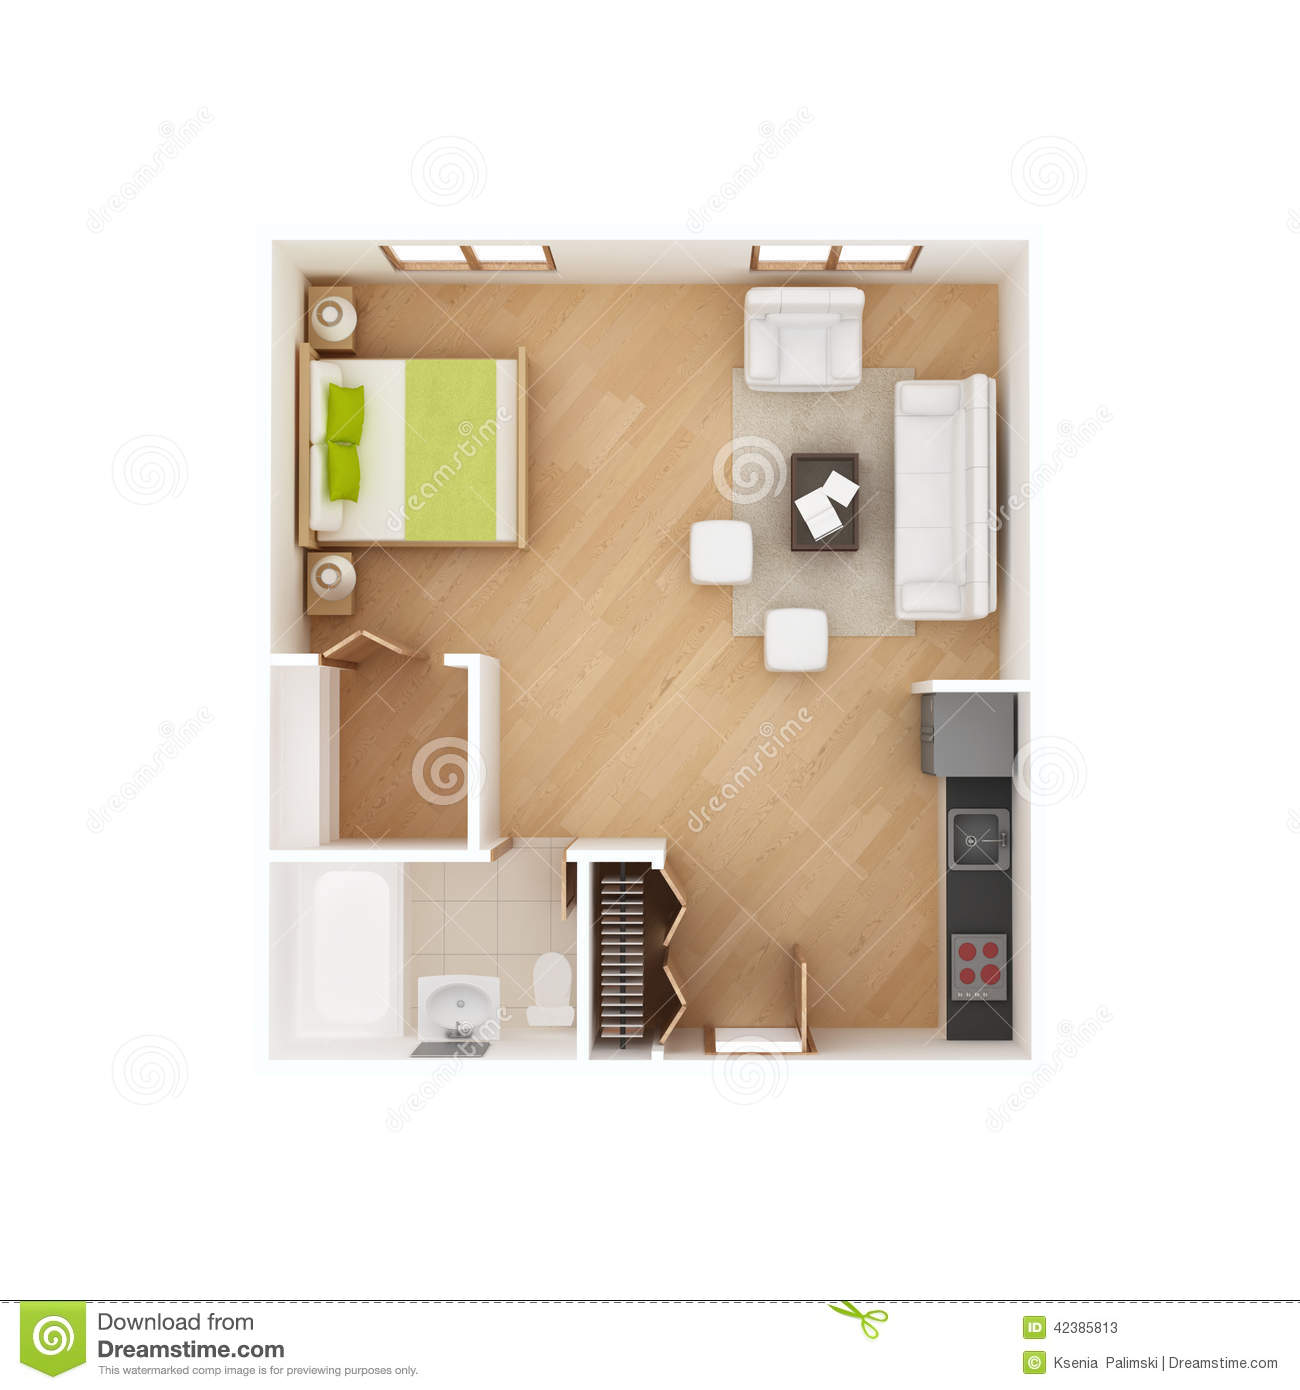 50 Small Studio Apartment Design Ideas moreover Increibles Ideas Decorar Estudio in addition Watch also 702b616470e0af4a  Dazzling Ideas Small Apartment Building Design Cute Designs Futuristic School 1296 864 Home Design apartment Concepts Plans Philippines in addition Granny Flat Designs. on cute studio apartment ideas